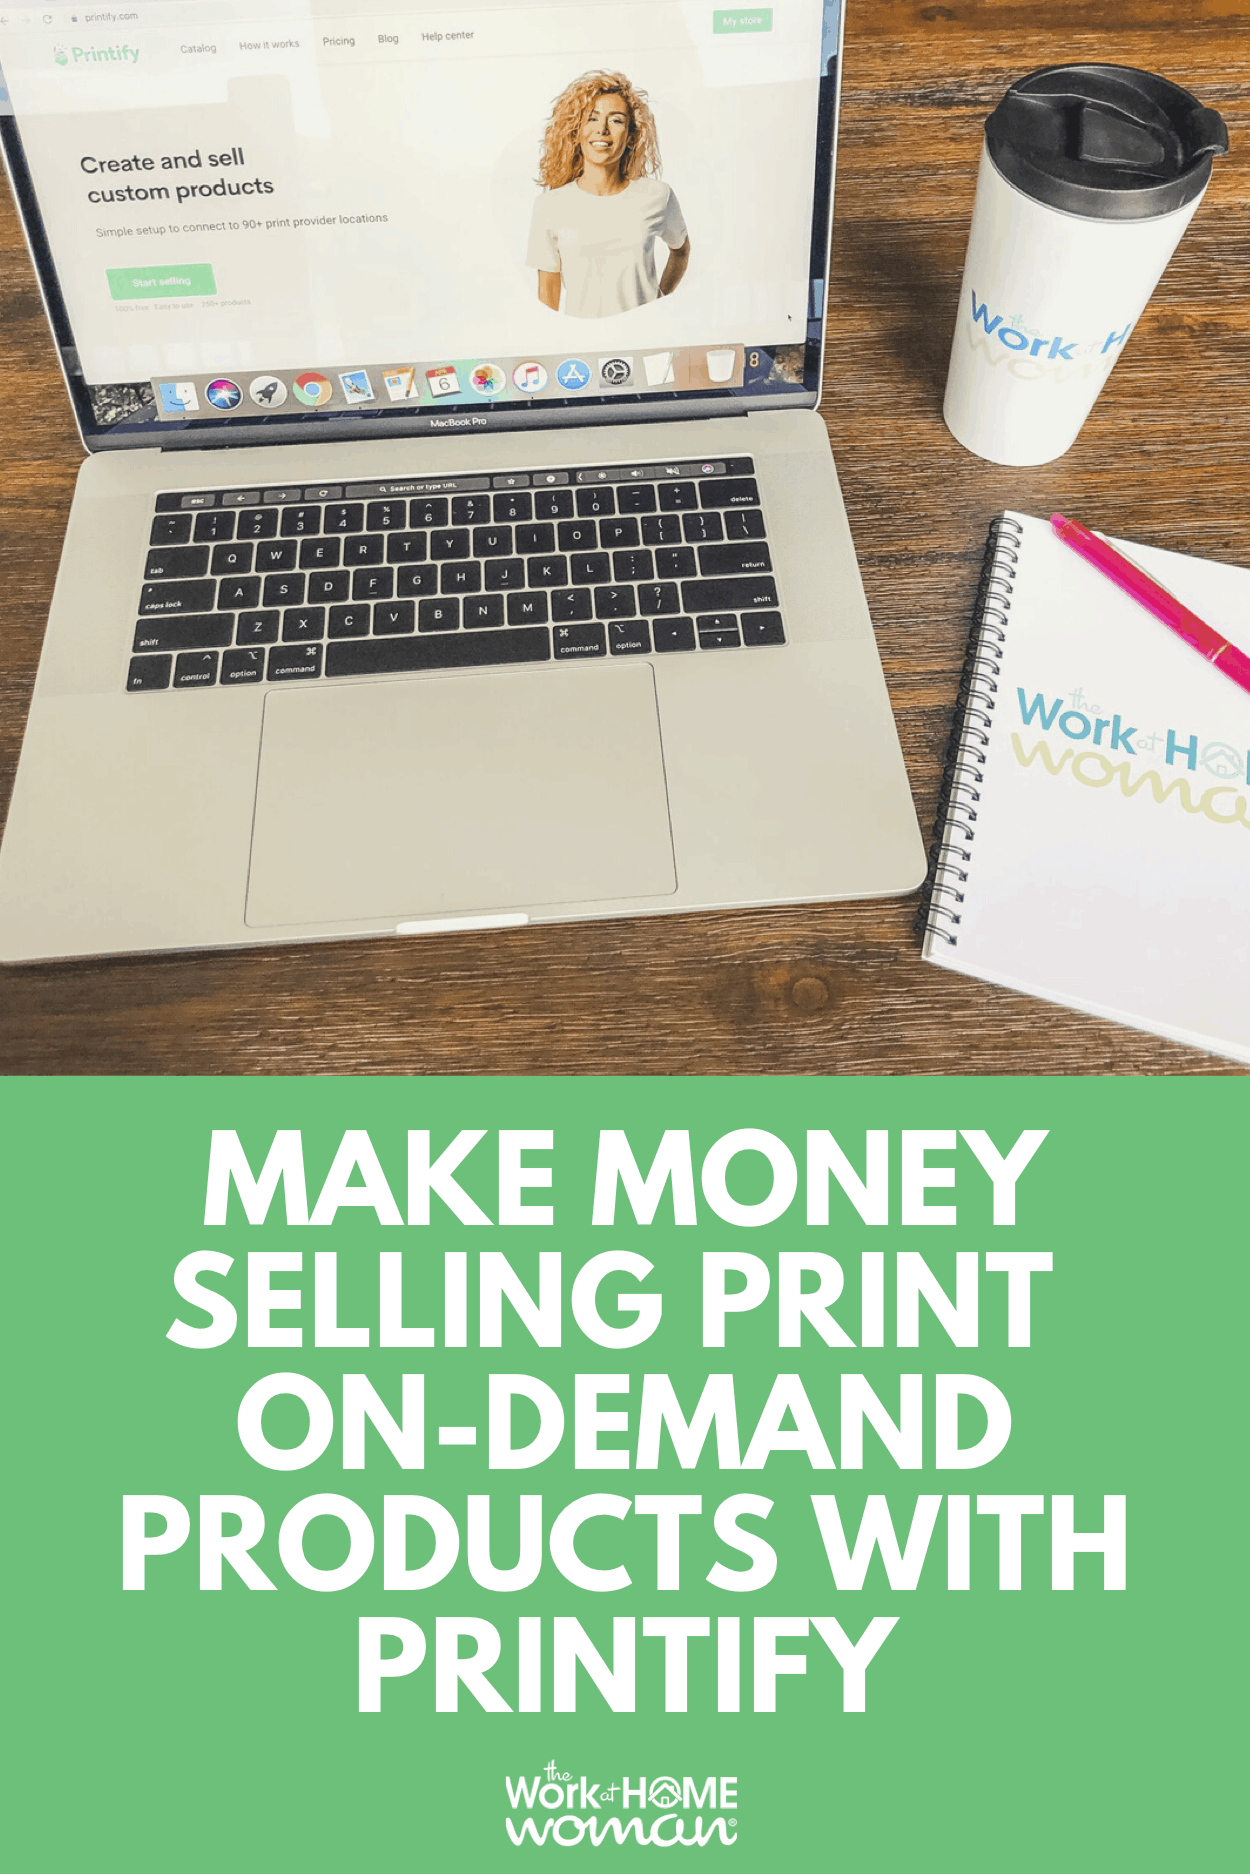 Printify Review: Make Money Selling Print-On-Demand Products